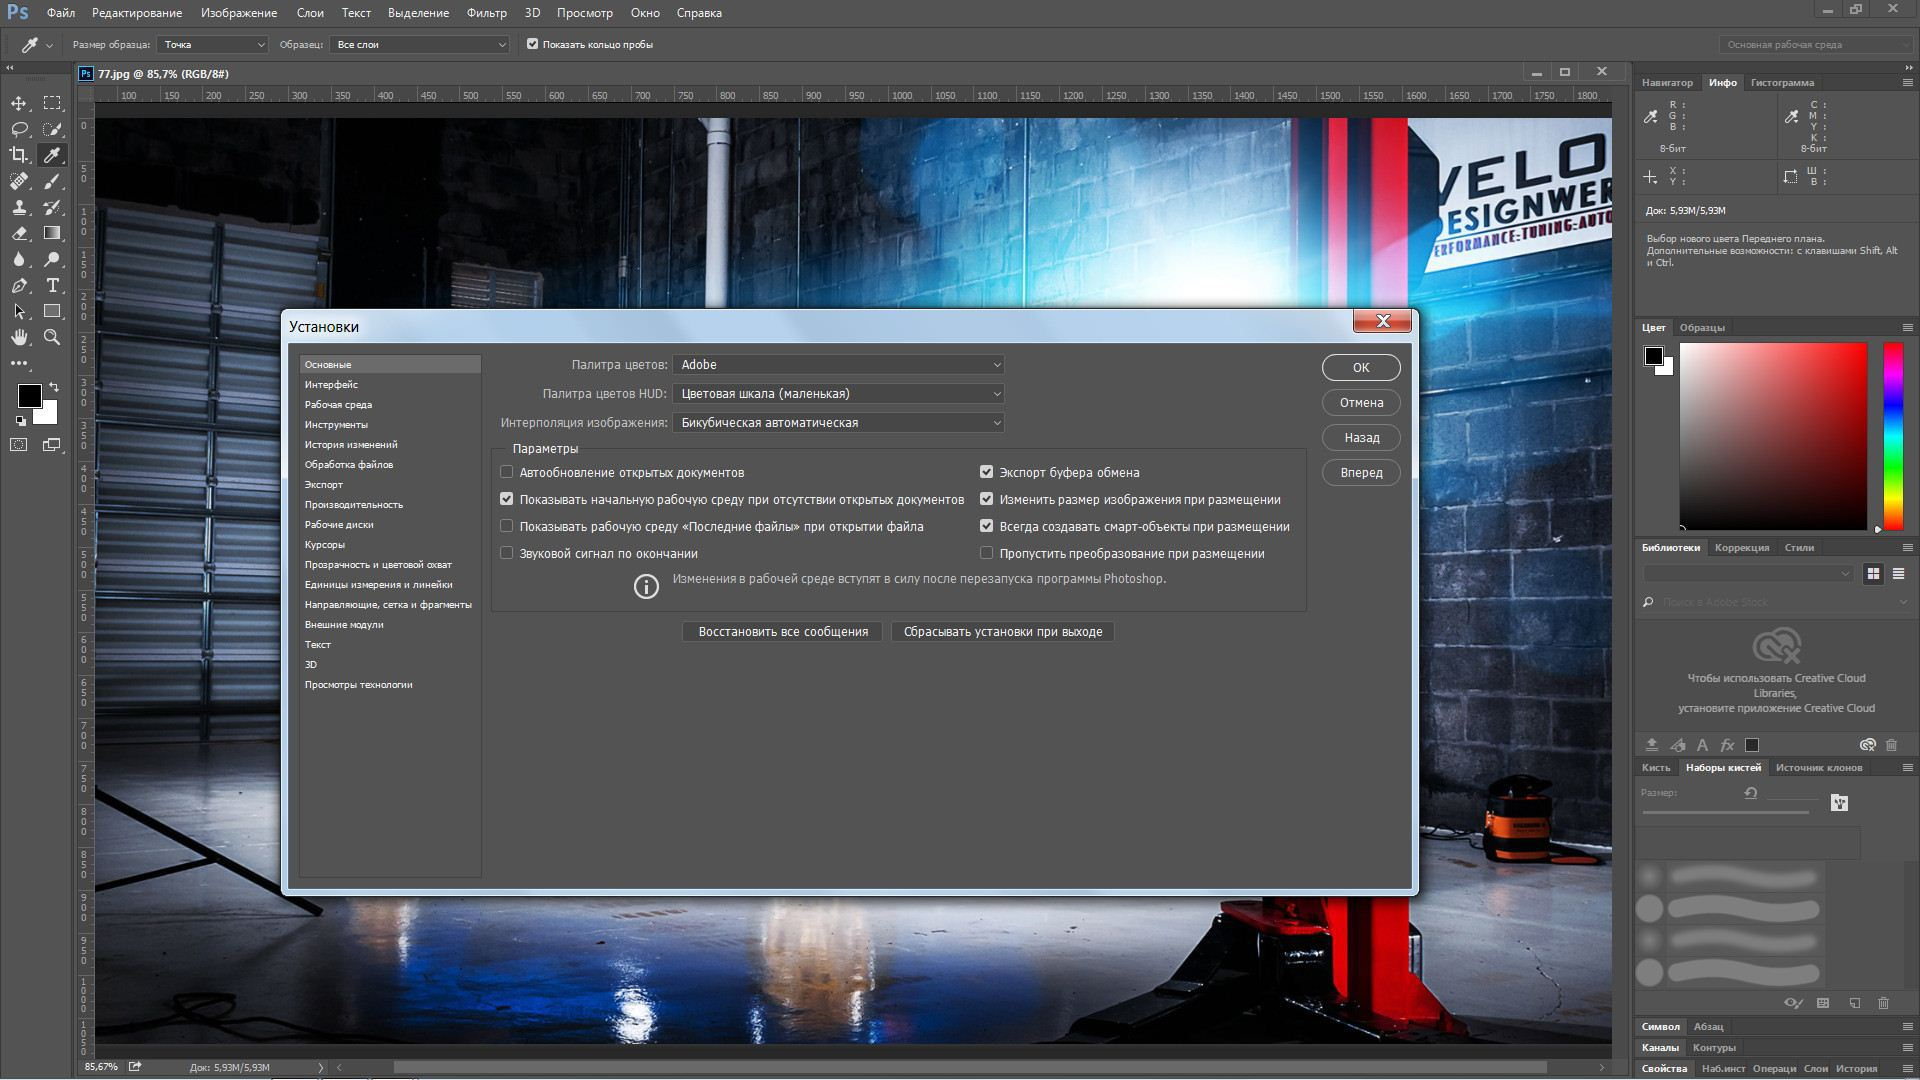 Adobe Photoshop CC (2018) 19.0 torrent download